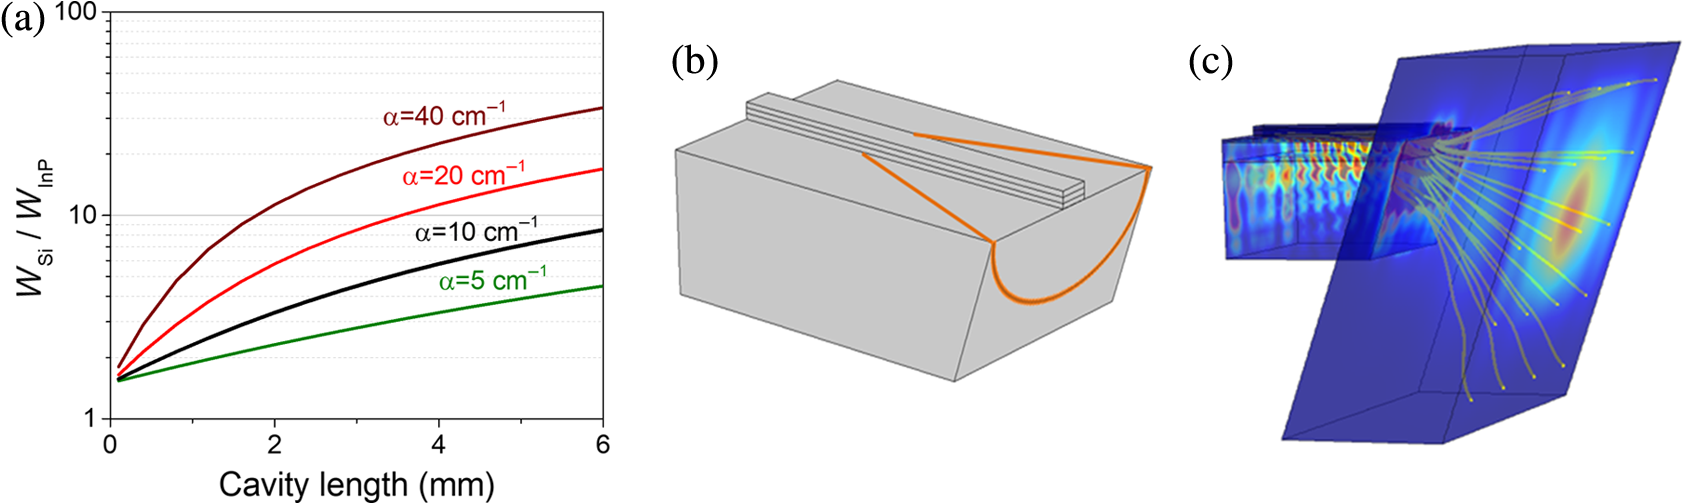 Broadly Tunable Terahertz Difference Frequency Generation In Quantum Cascaded Form C Dry Contact Wiring Schematic The Yellow Lines Are Power Streamlines Indicating Propagation Direction Of Thz Outcoupled To Equal Points On Air Monitor